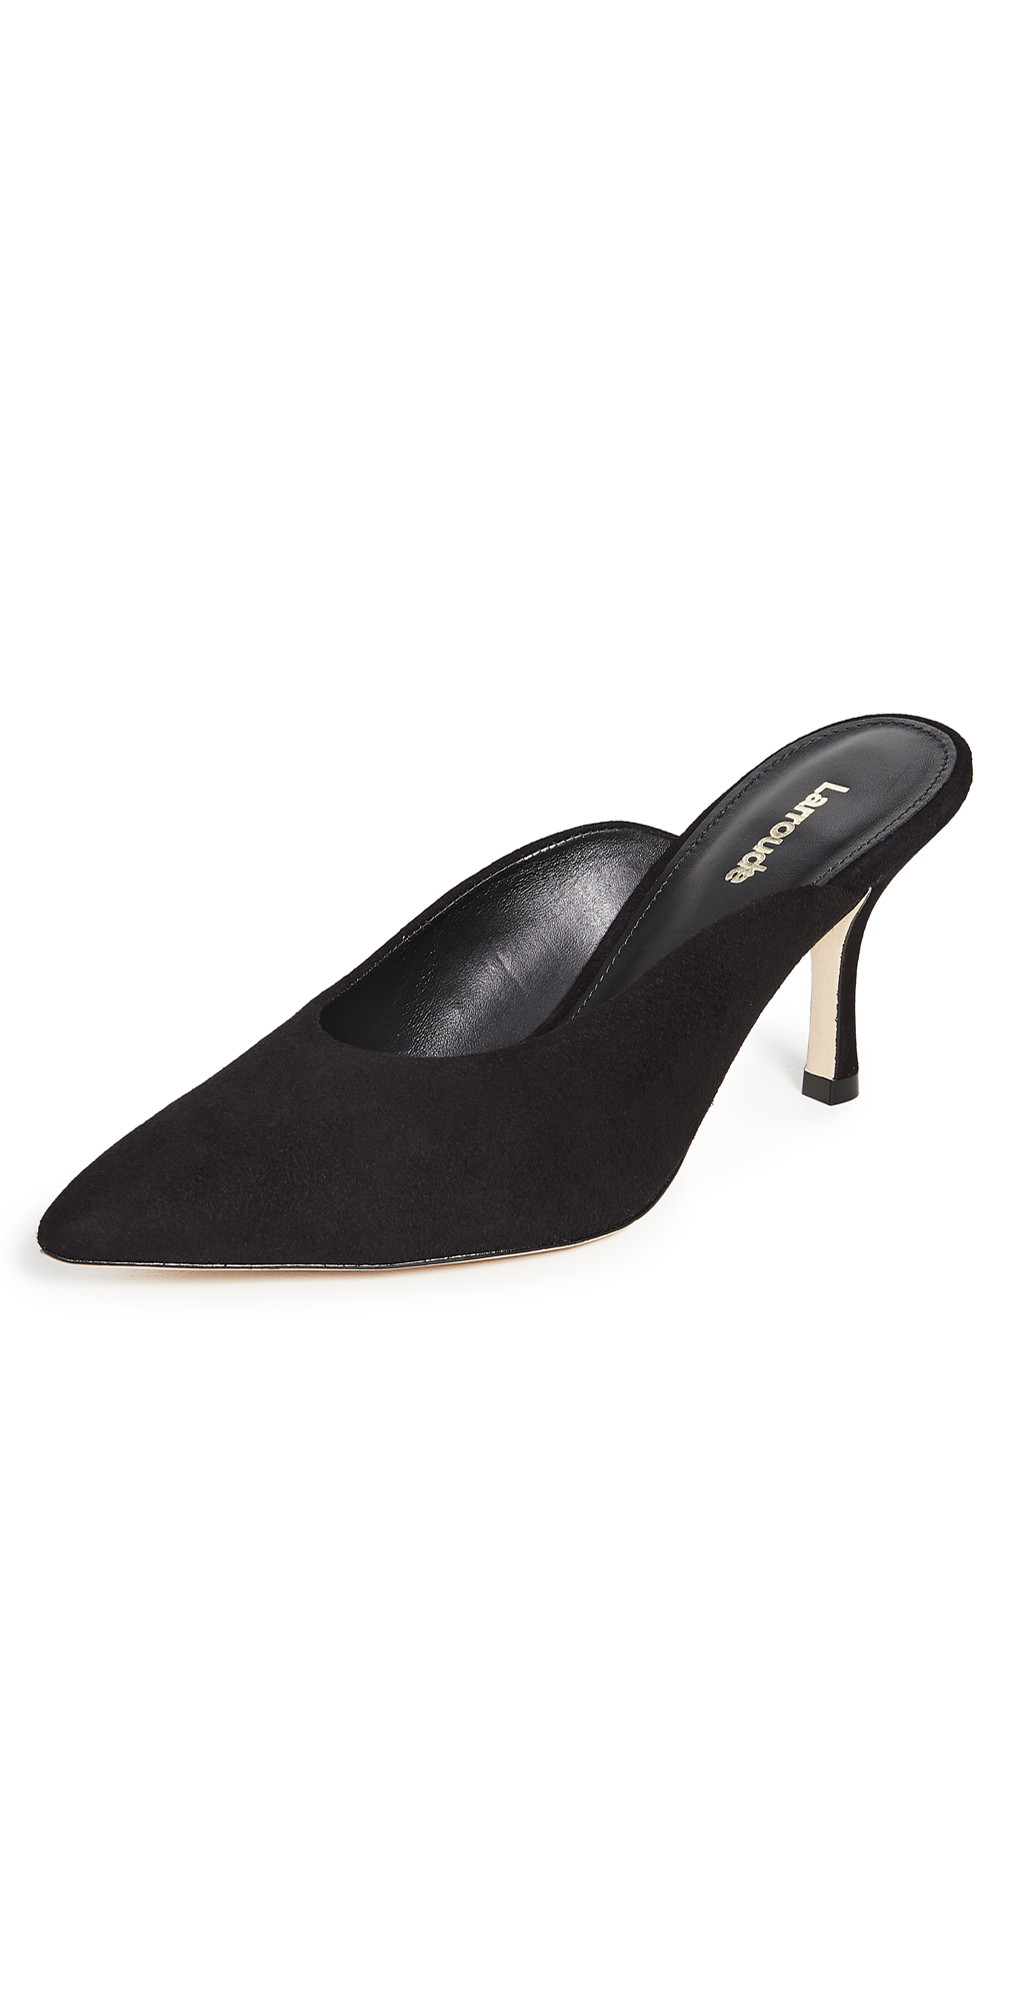 Lady Point Toe Mules